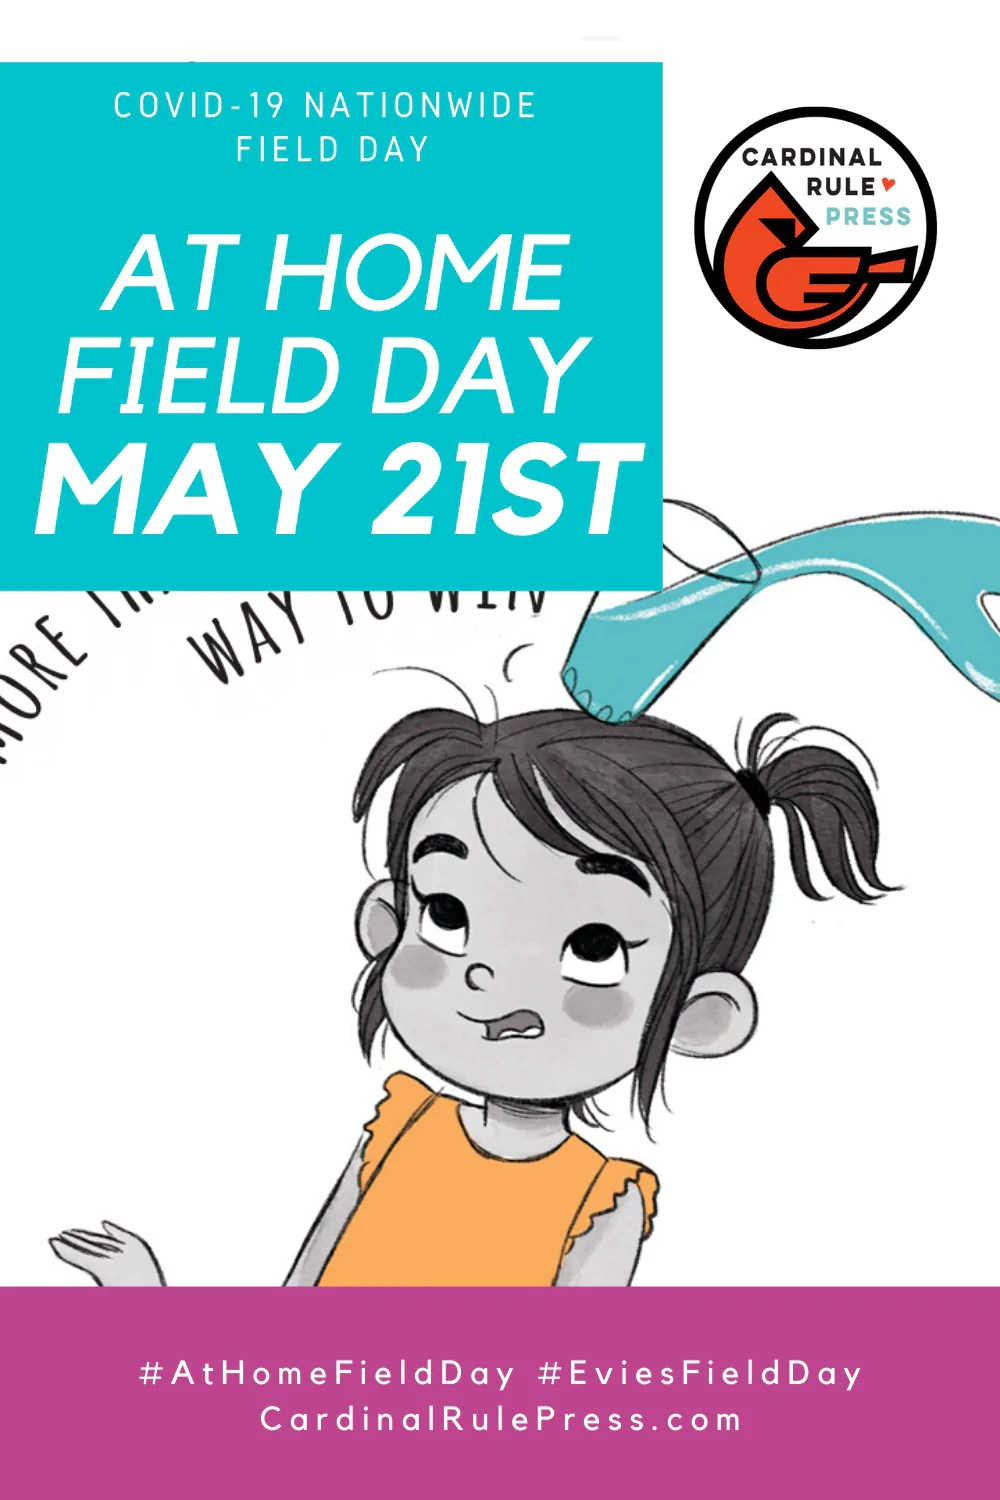 At-Home Field Day